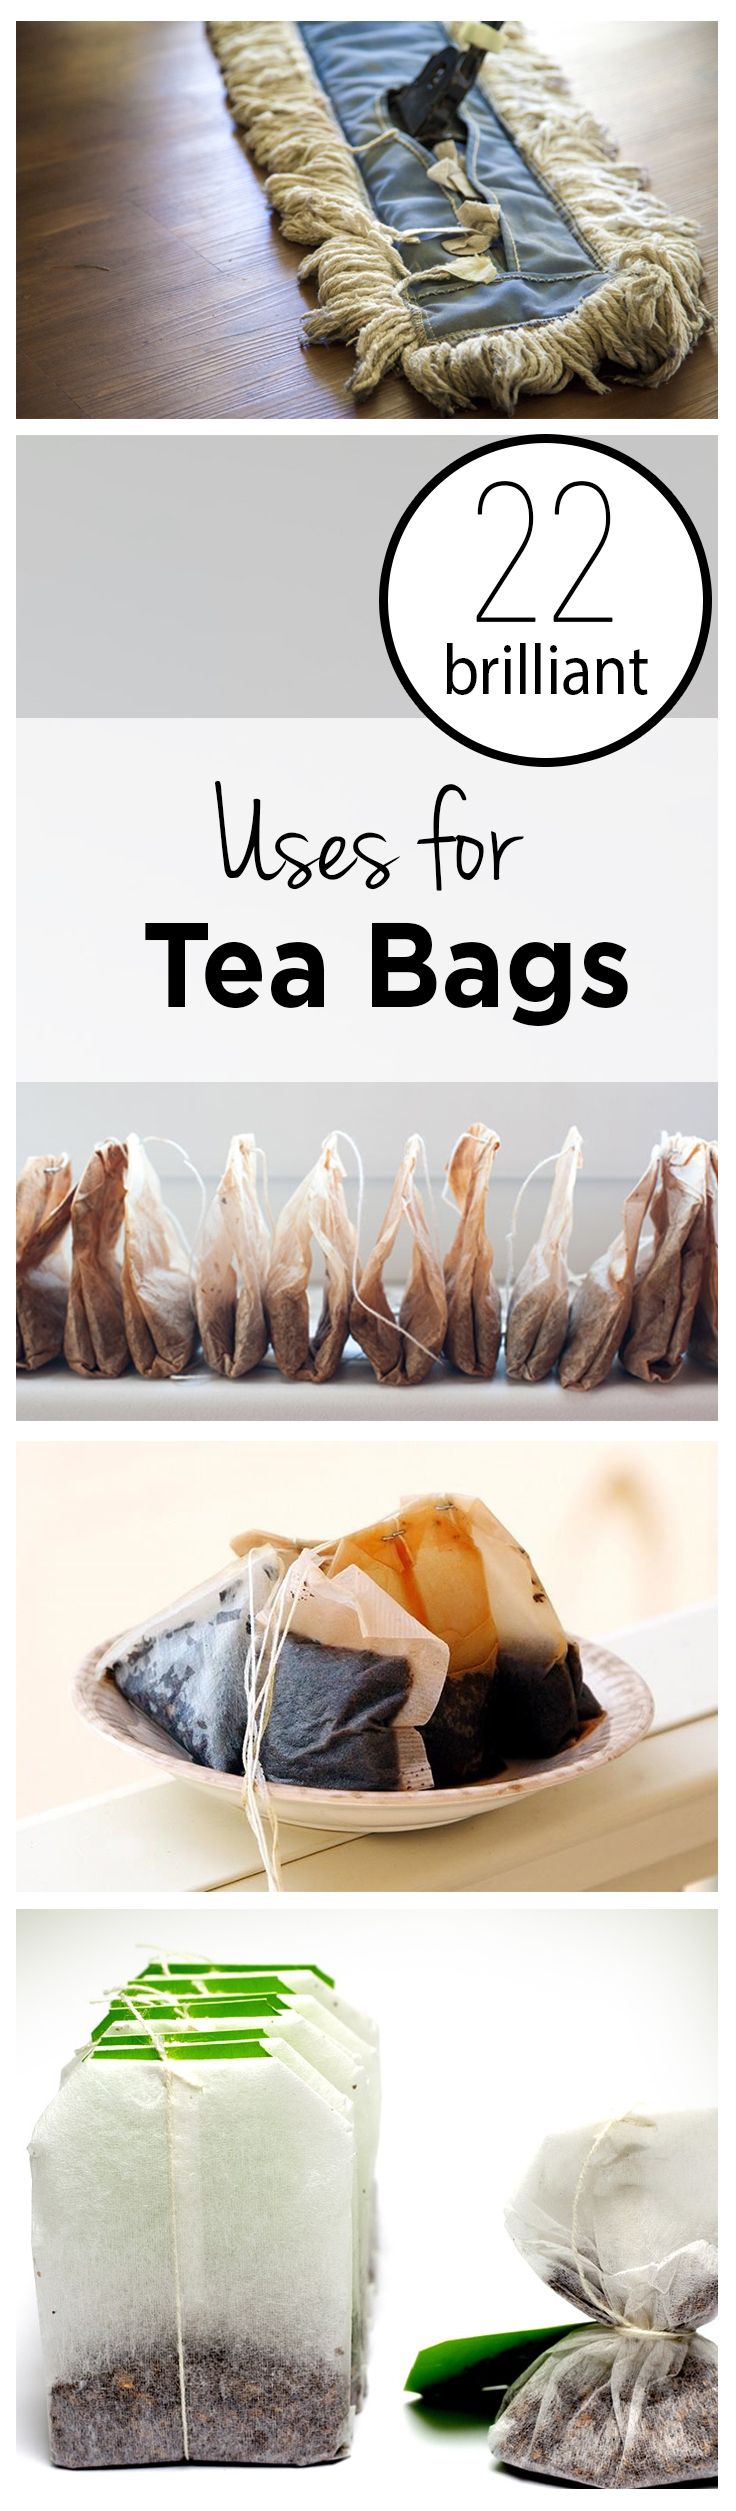 pin-22-brilliant-uses-for-tea-bags